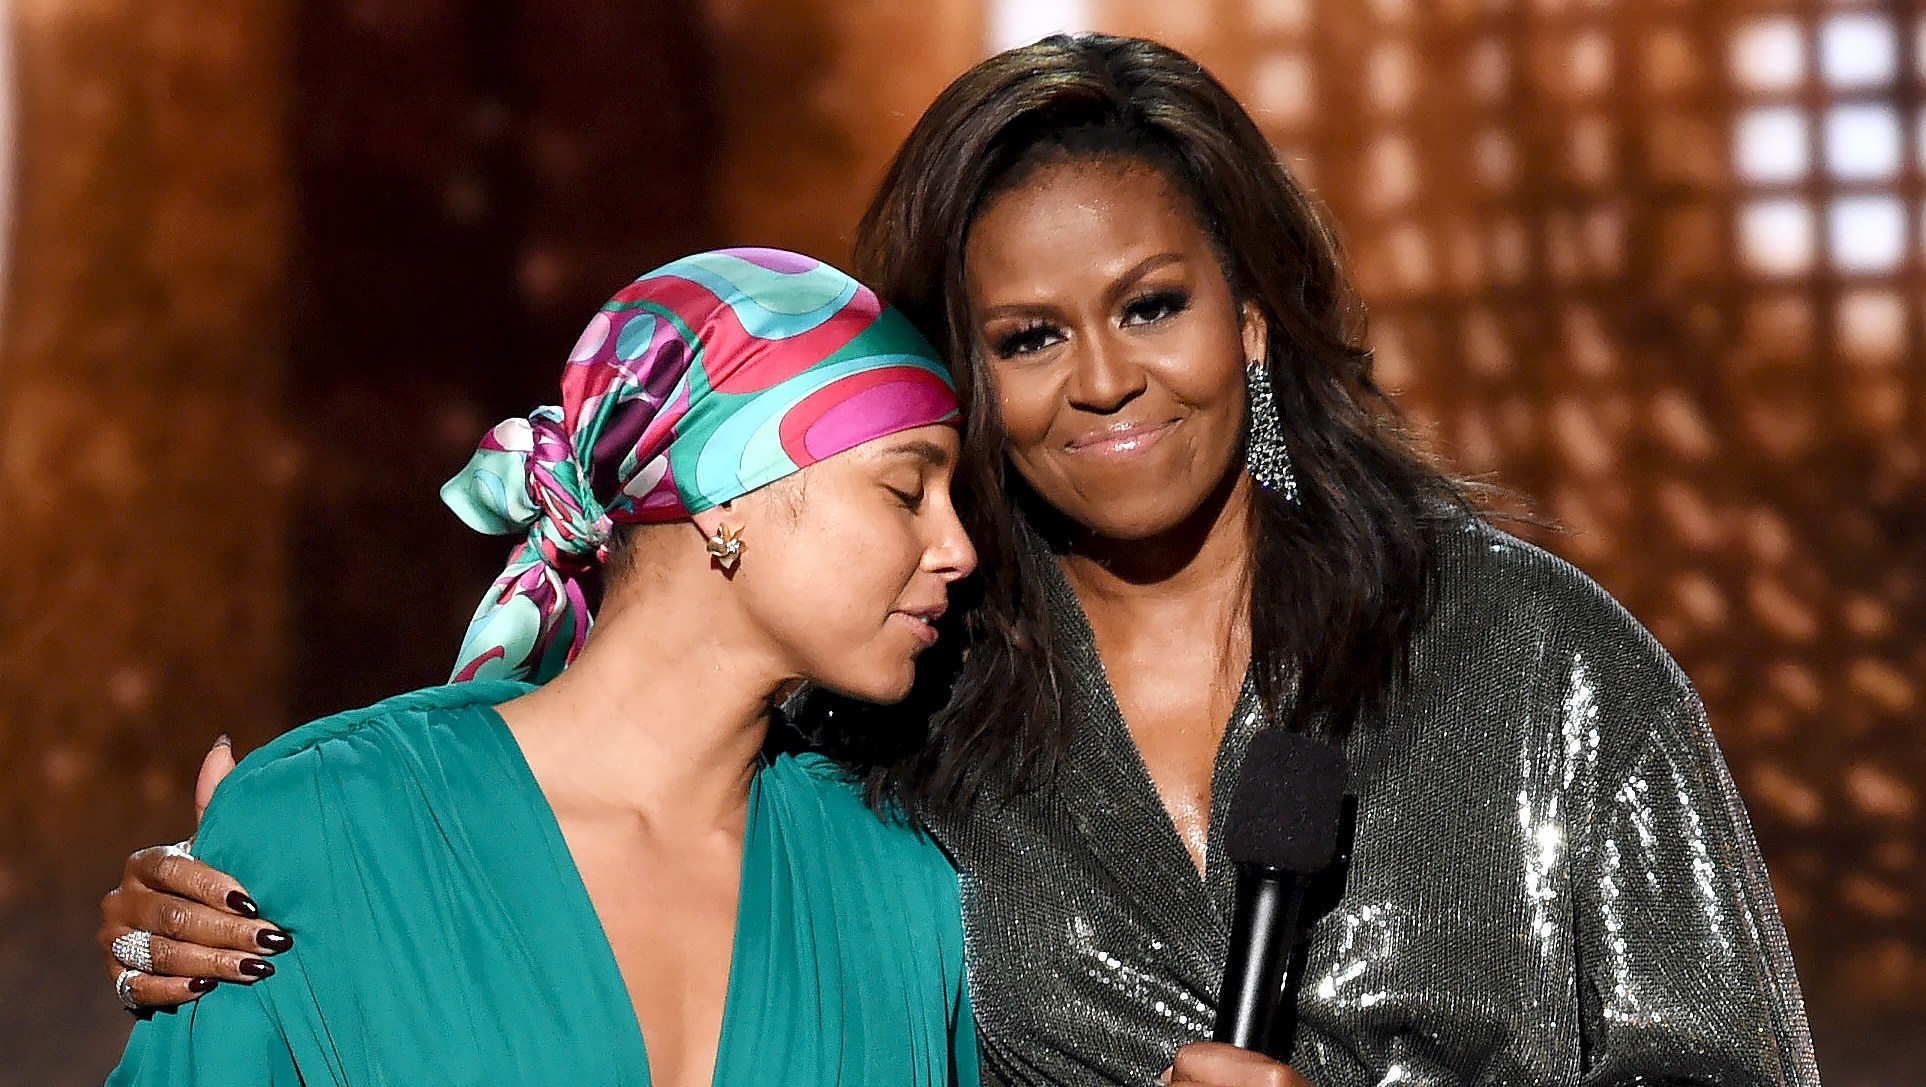 Alicia-Keys-and-Michelle-Obama-Grammys-2019